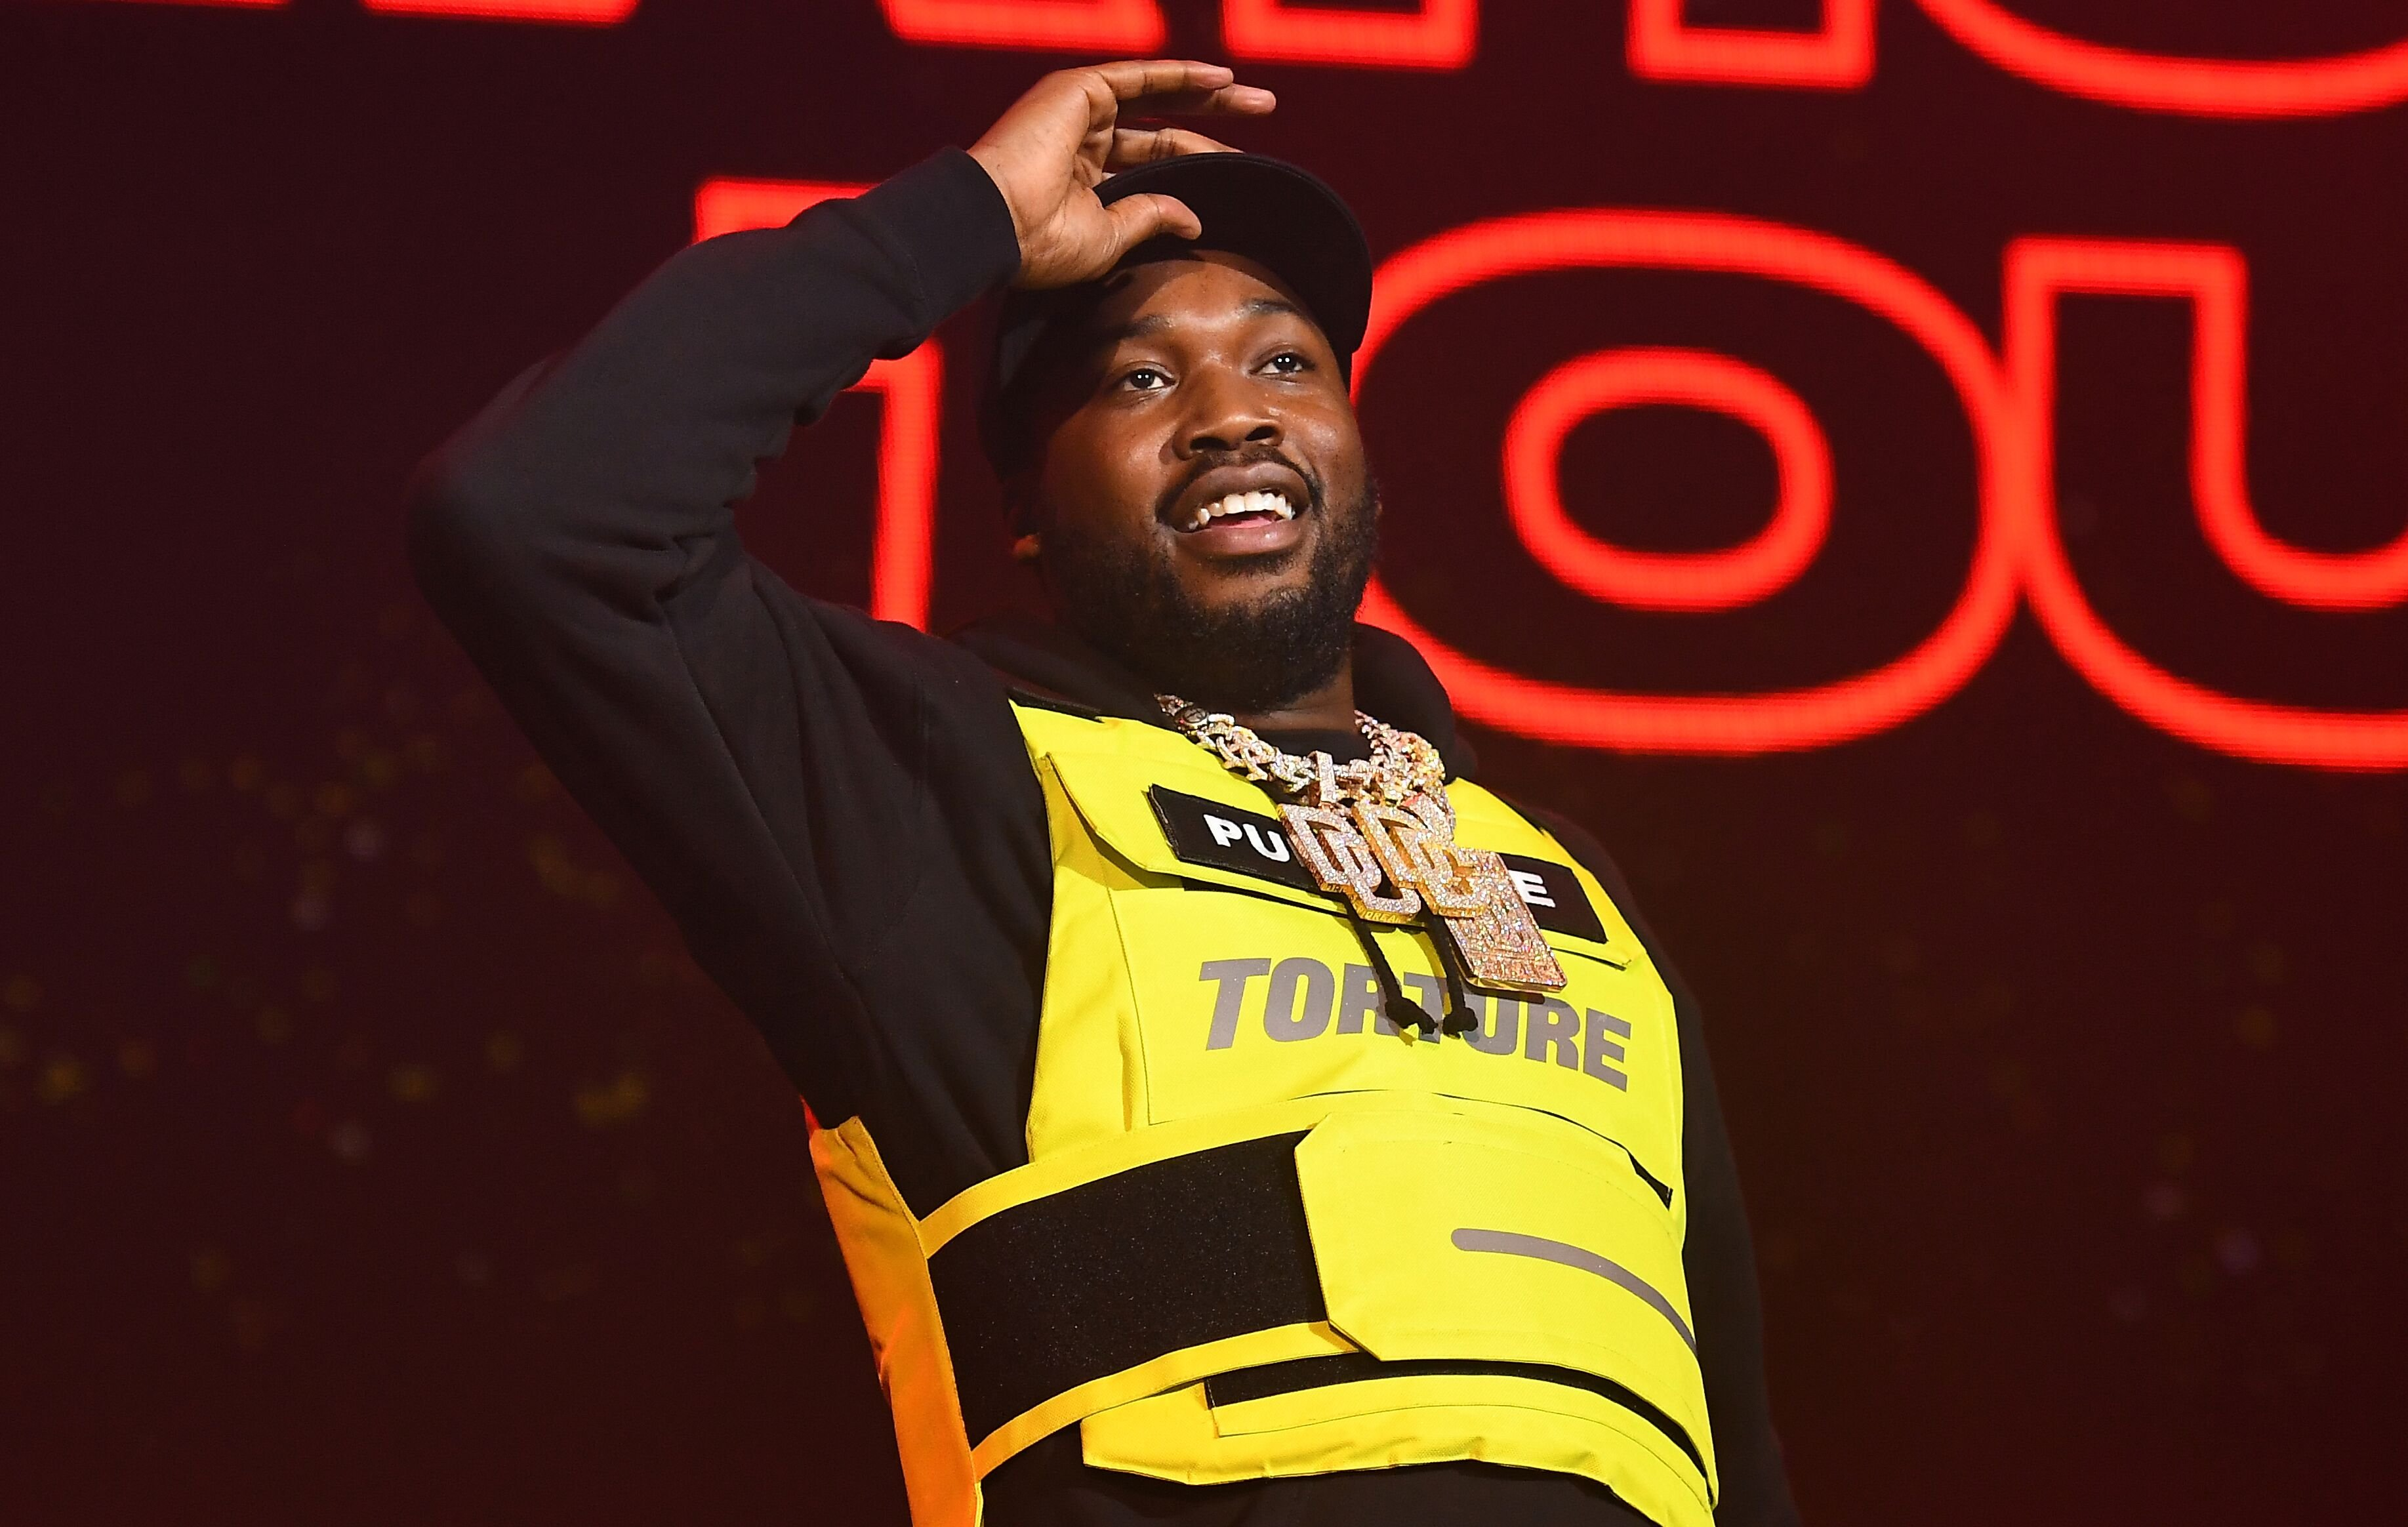 Meek Mill performing at a concert | Source: Getty Images/GlobalImagesUkraine